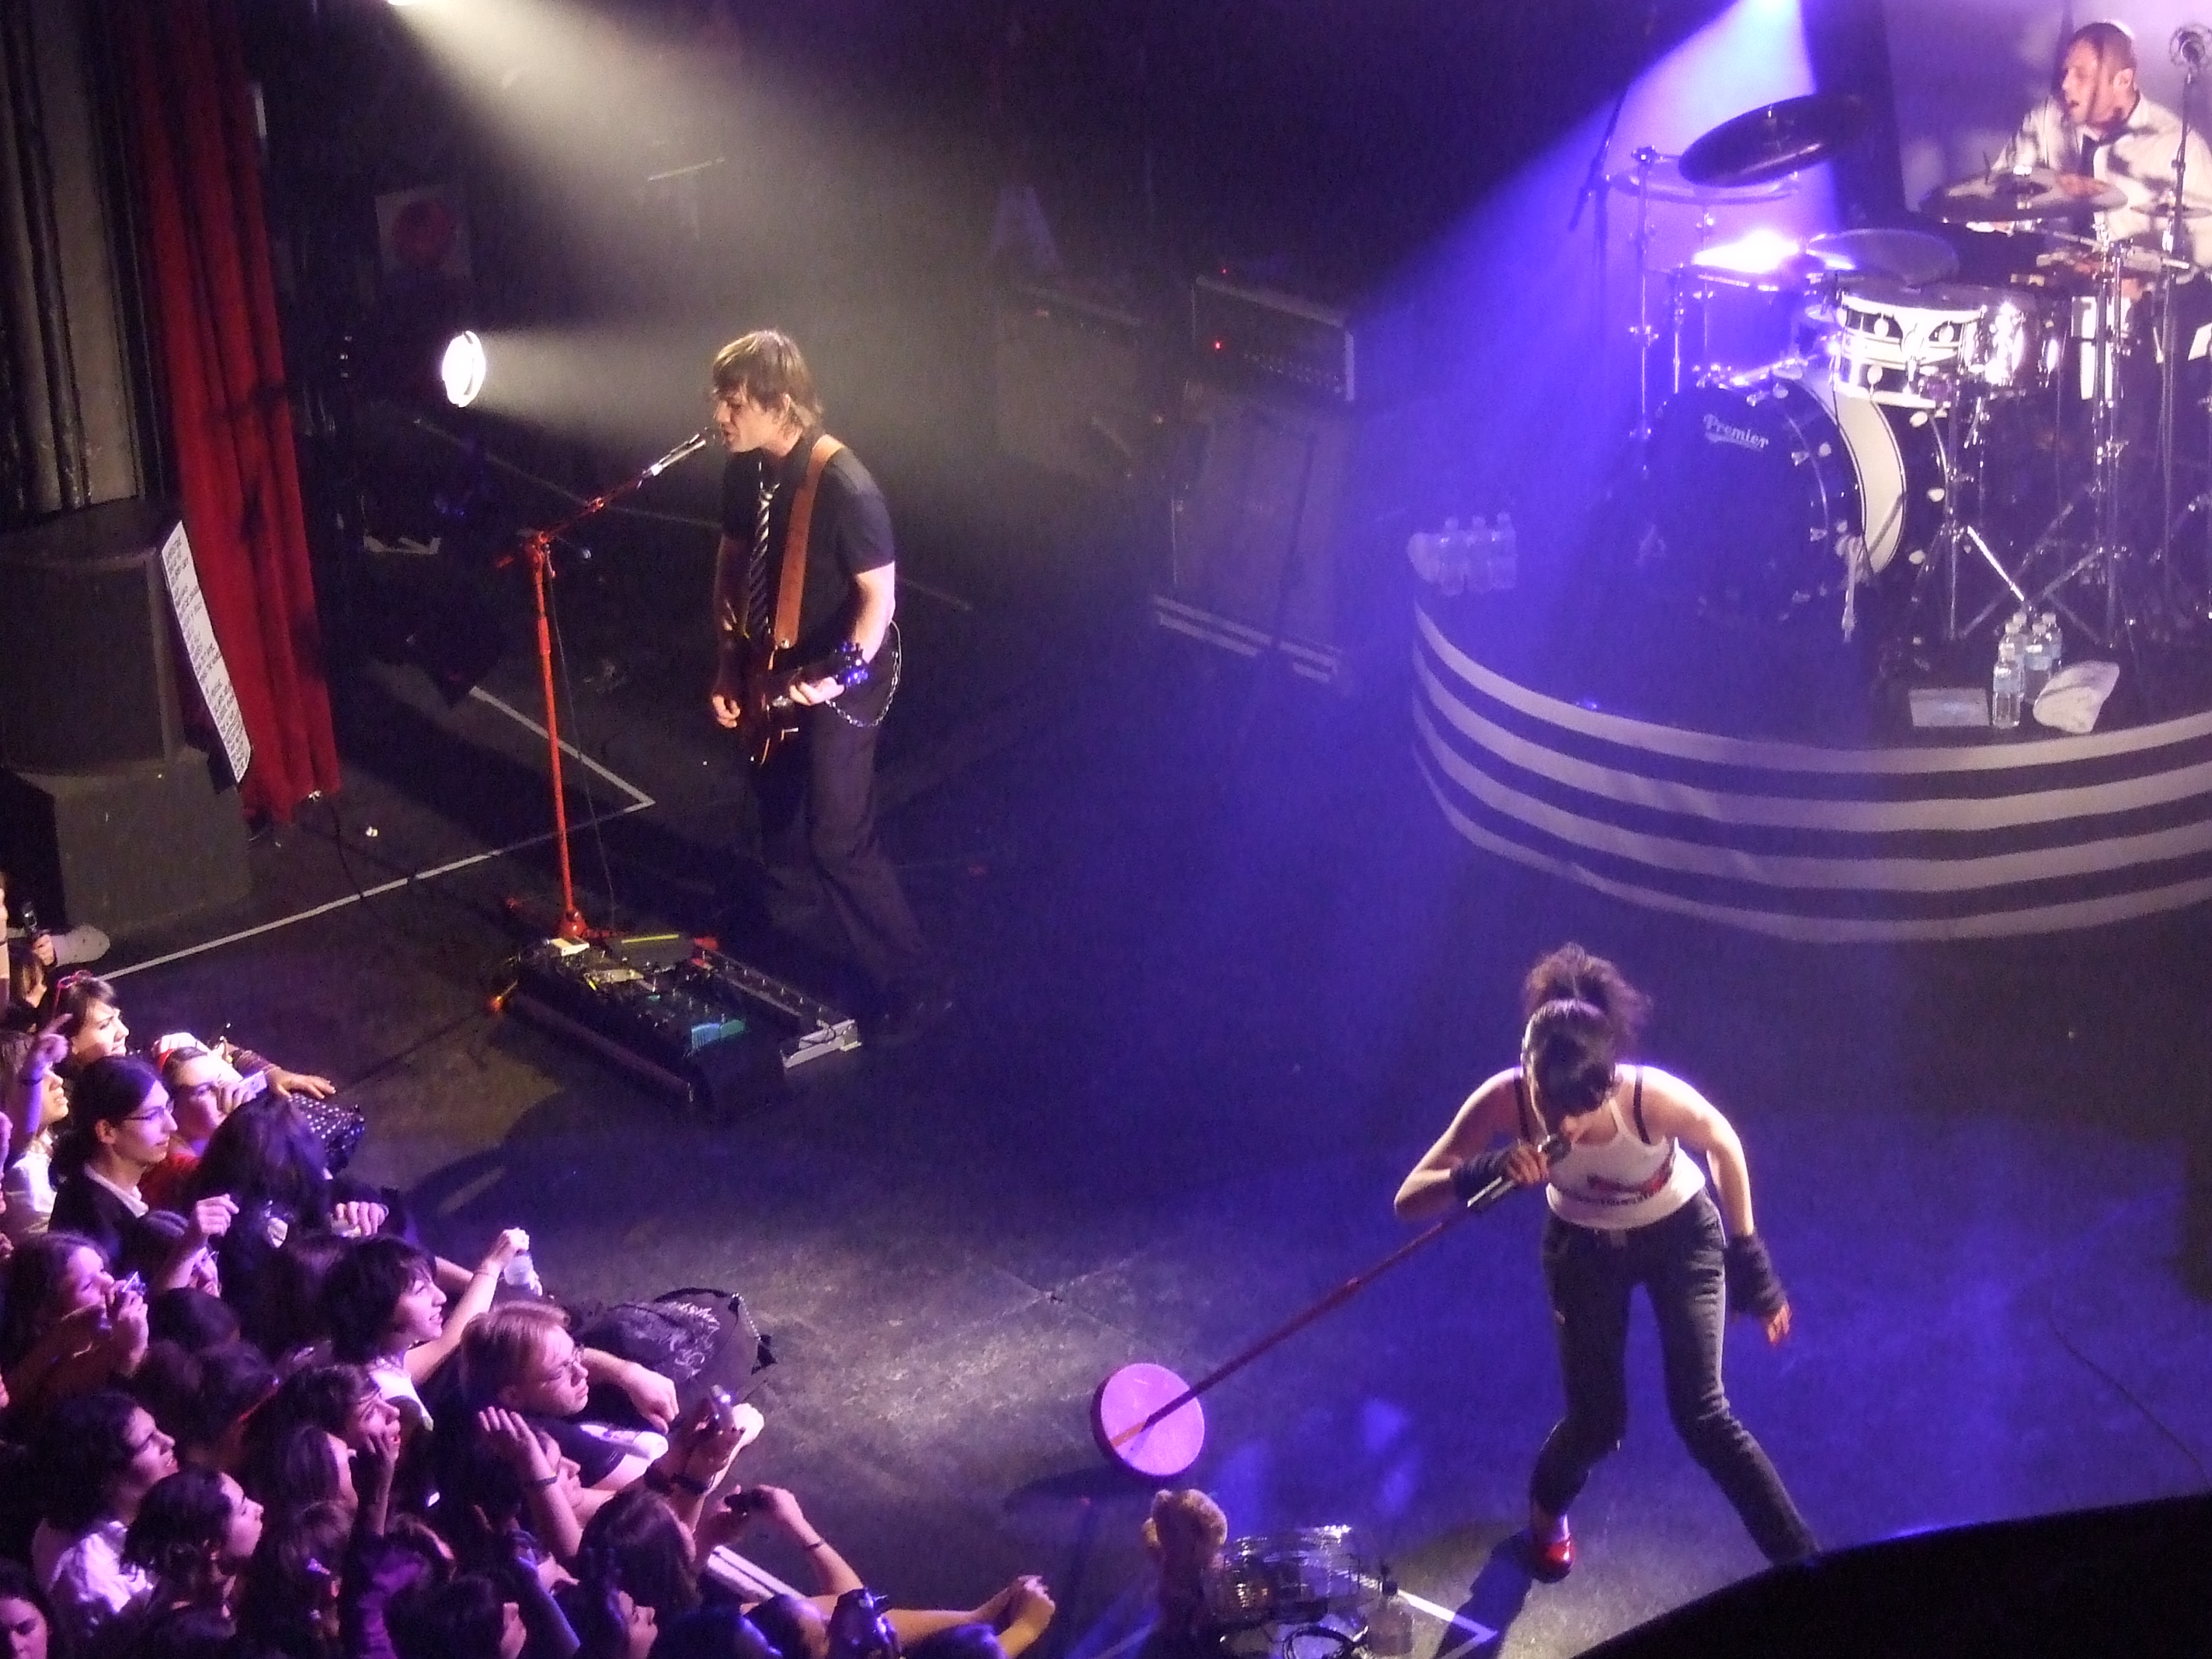 http://upload.wikimedia.org/wikipedia/commons/e/e4/Superbus_wow_la_cigale.jpg